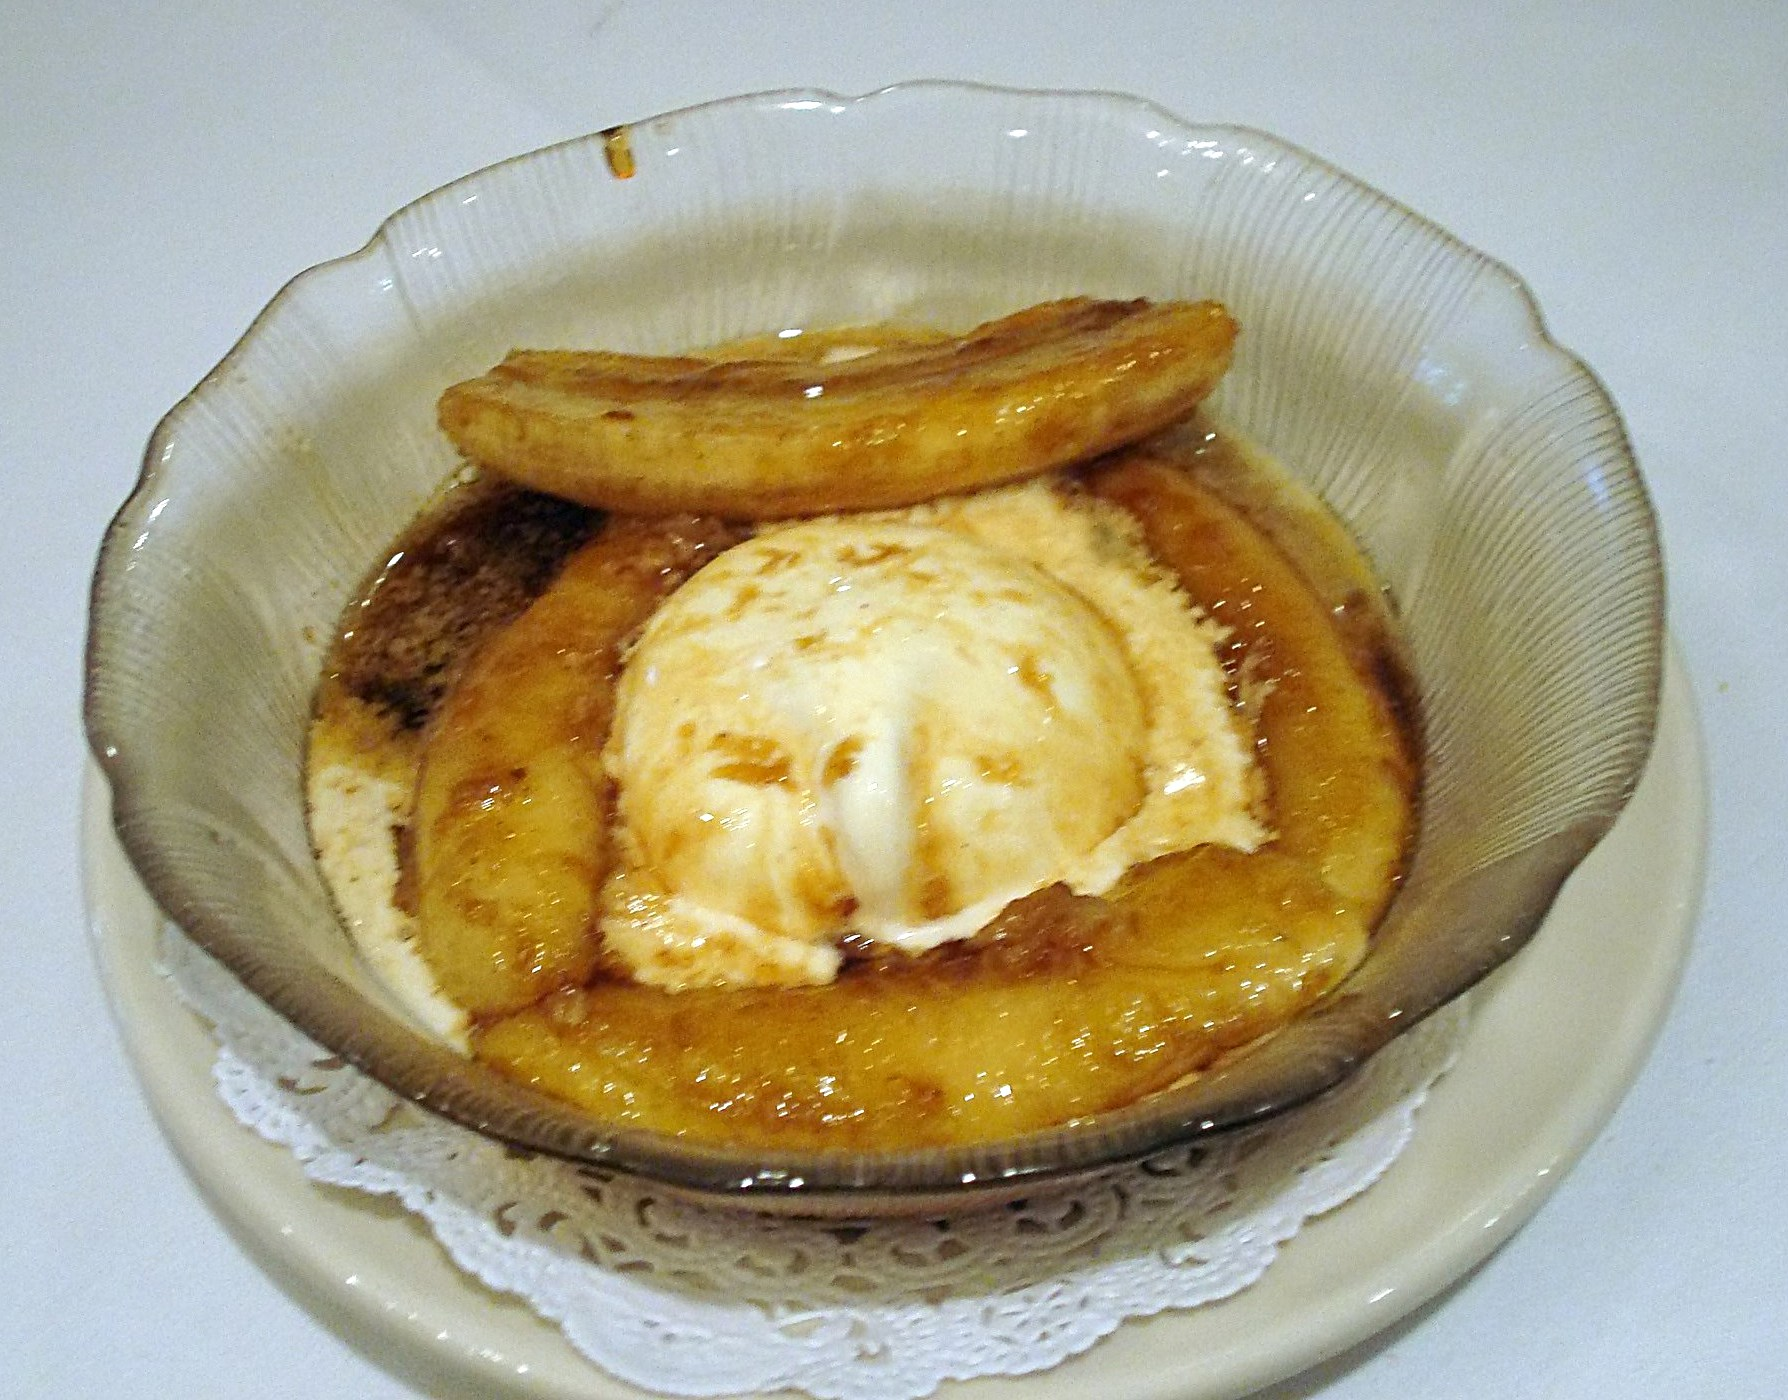 File:Brennan's Bananas Foster.jpg - Wikipedia, the free encyclopedia